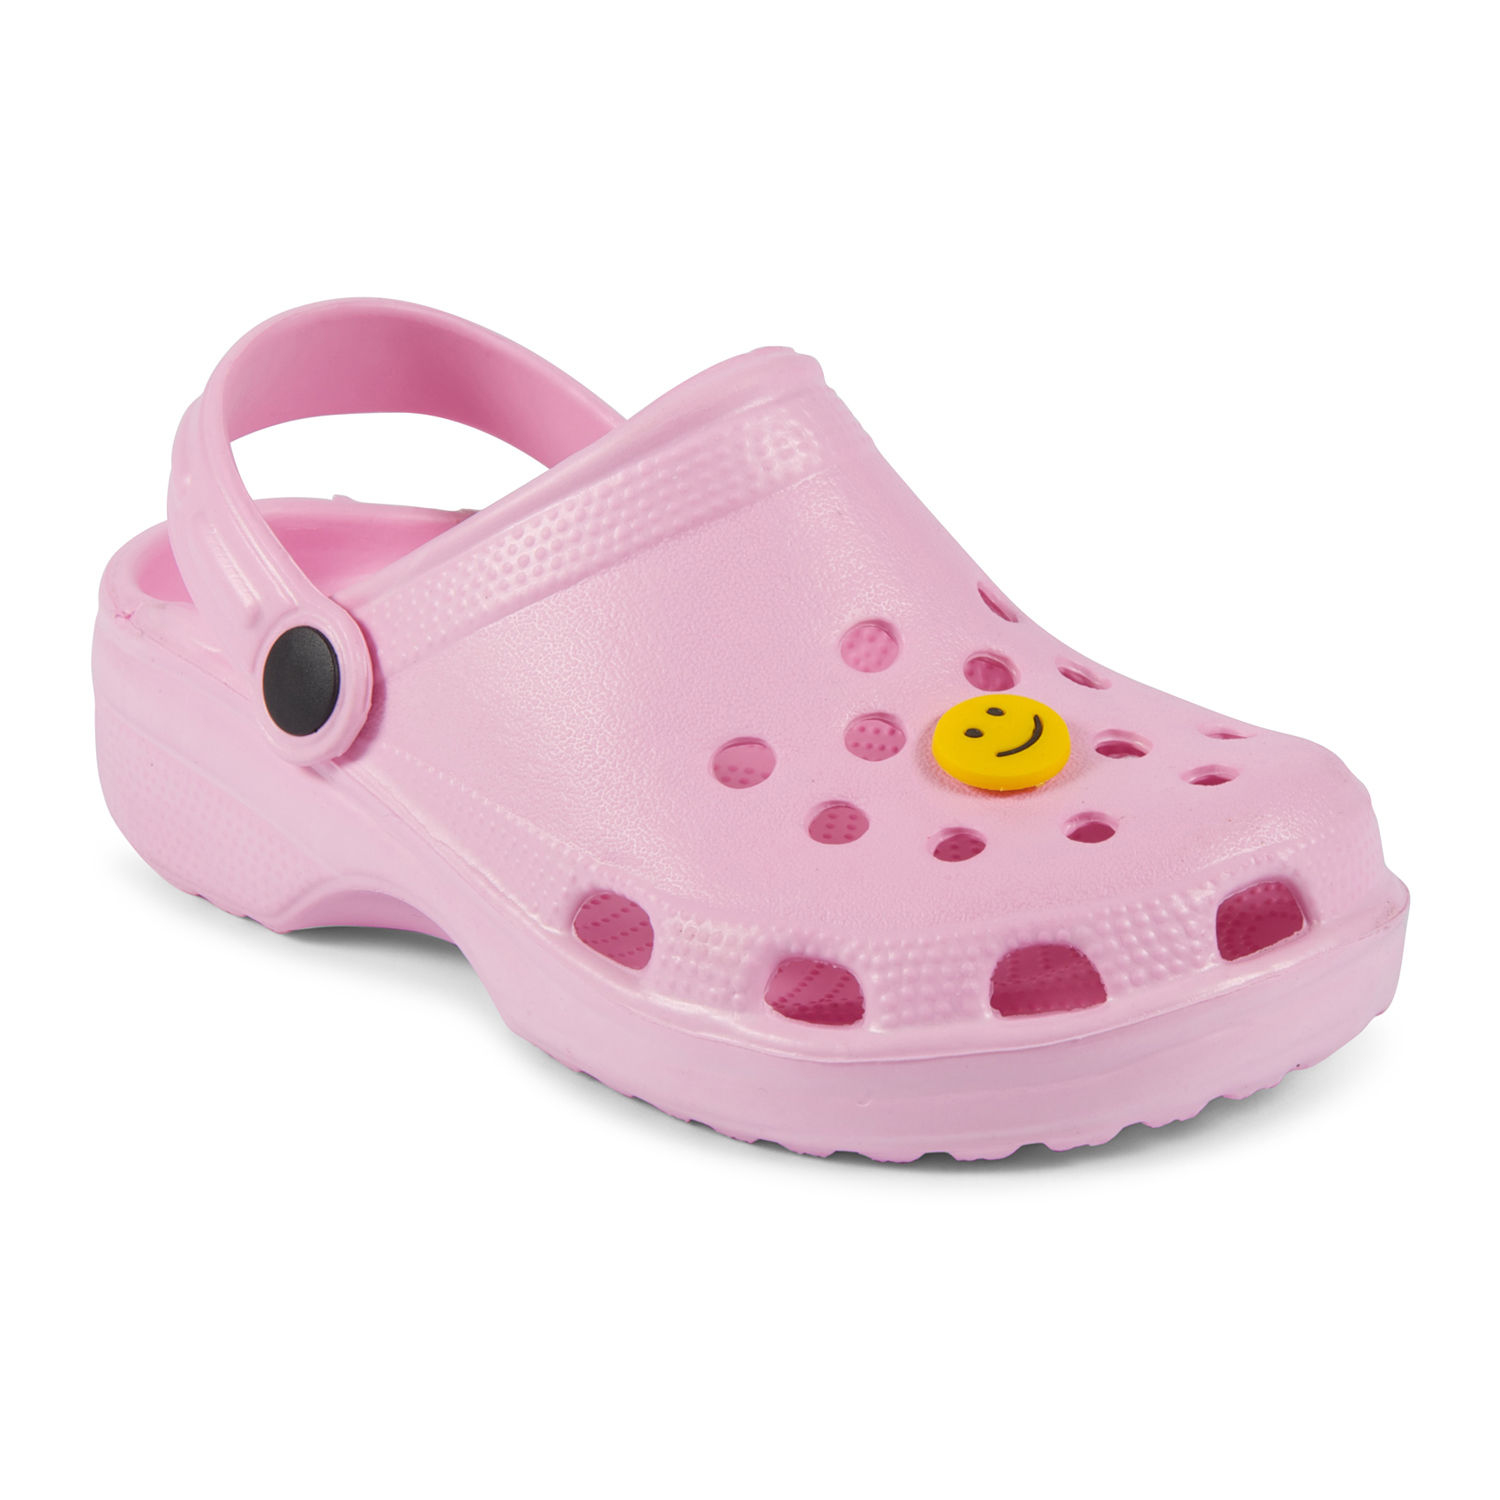 Baby s Infants Summer Beach Clogs Sandals Slippers Slip Shoes